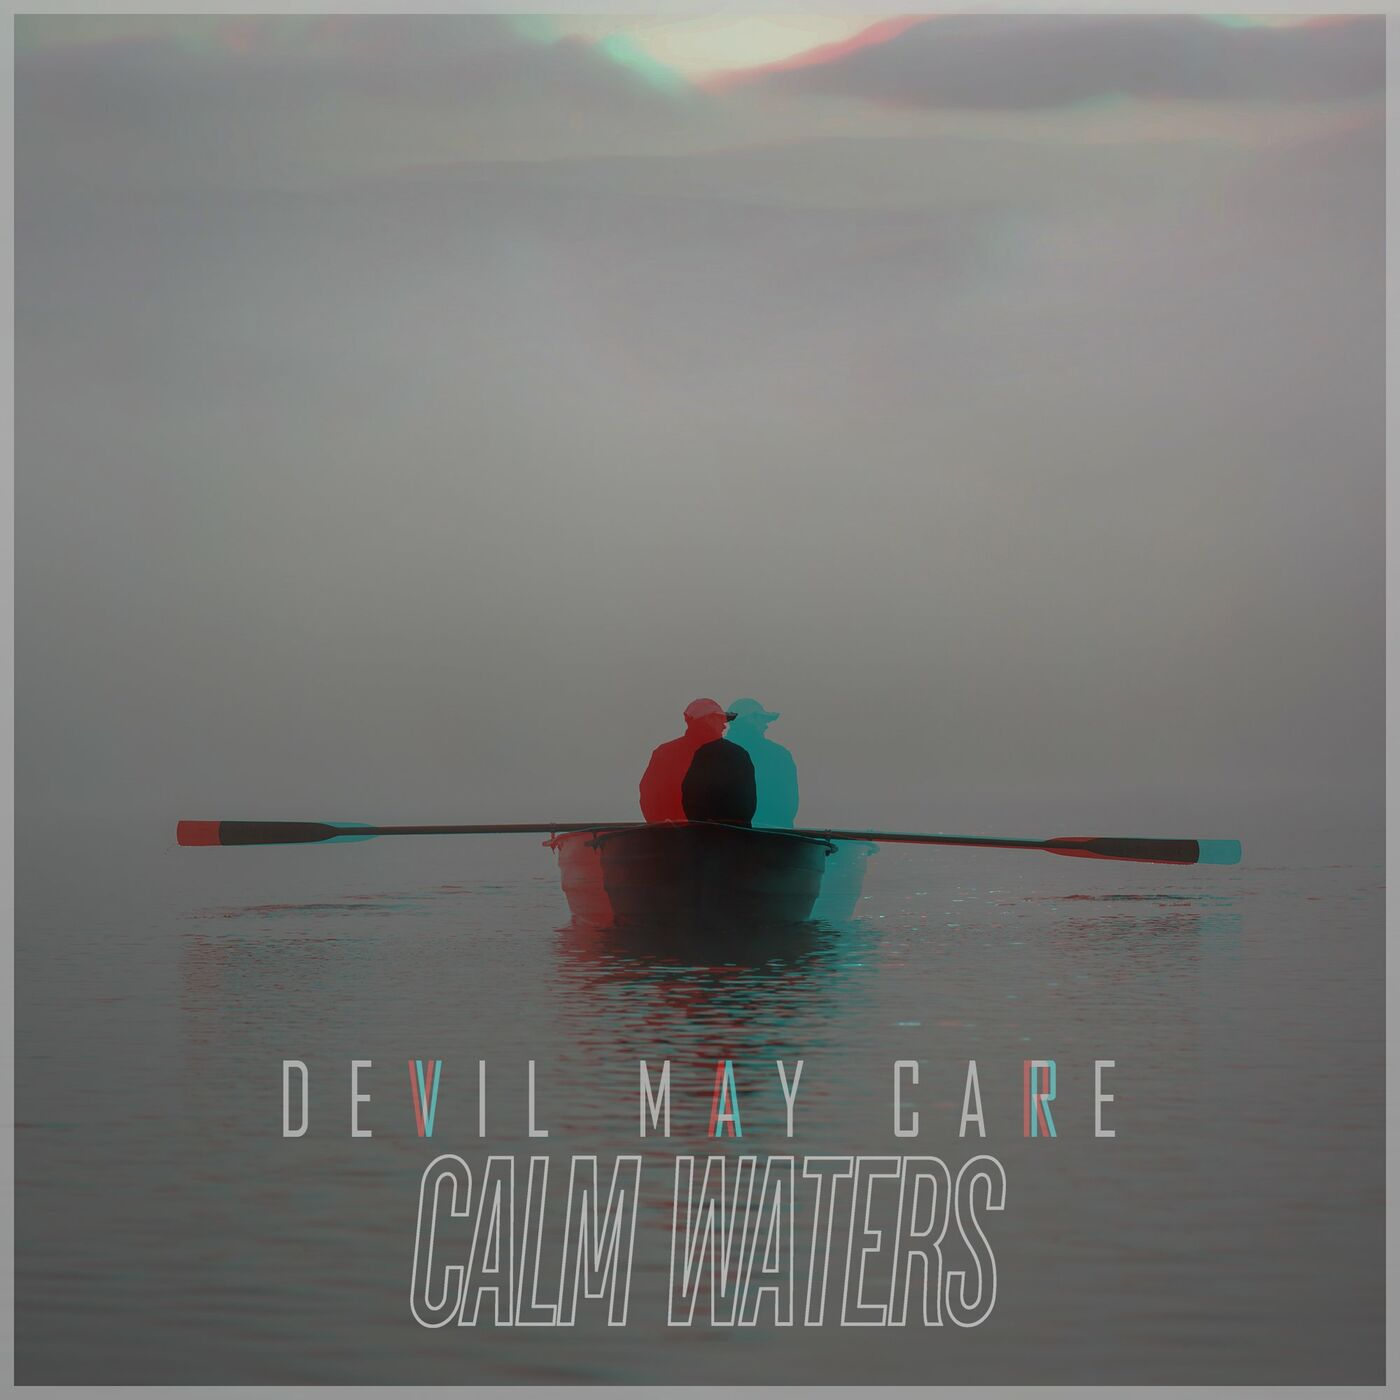 Devil May Care - Calm Waters [single] (2020)